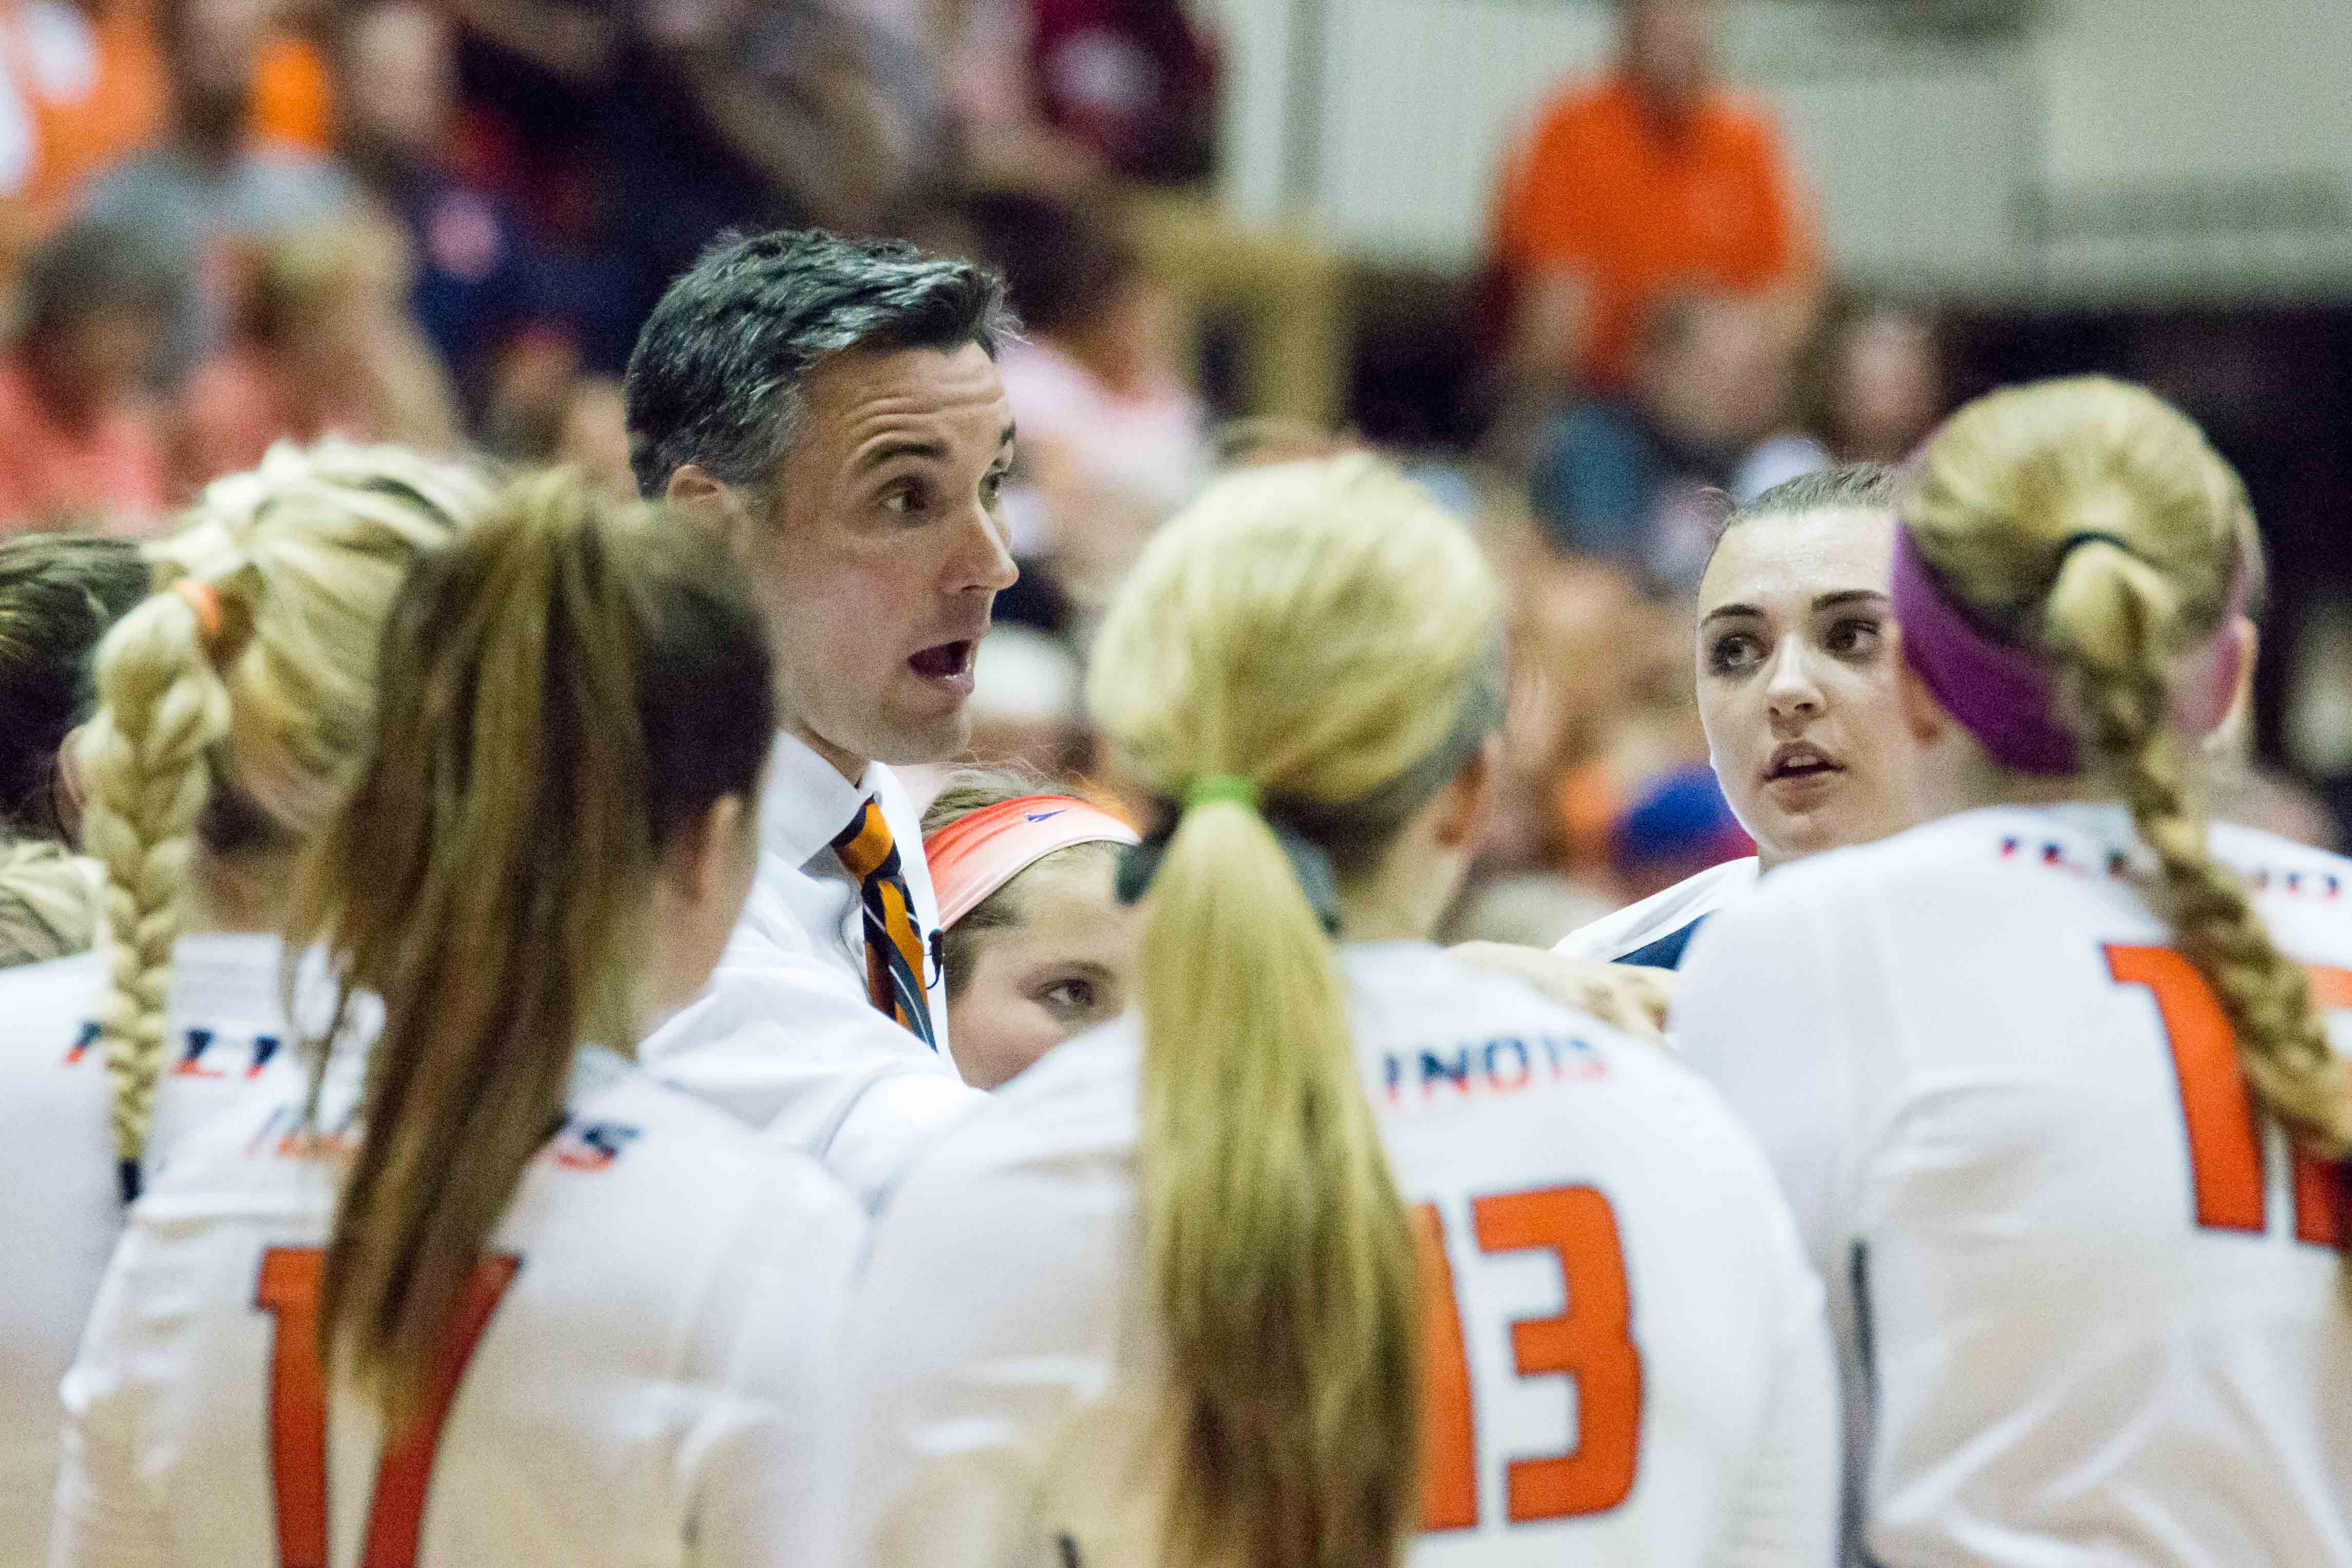 Illinois head coach Kevin Hambly talks to his team between sets during the match against Arkansas on August 26. The Ilini won 3-0.